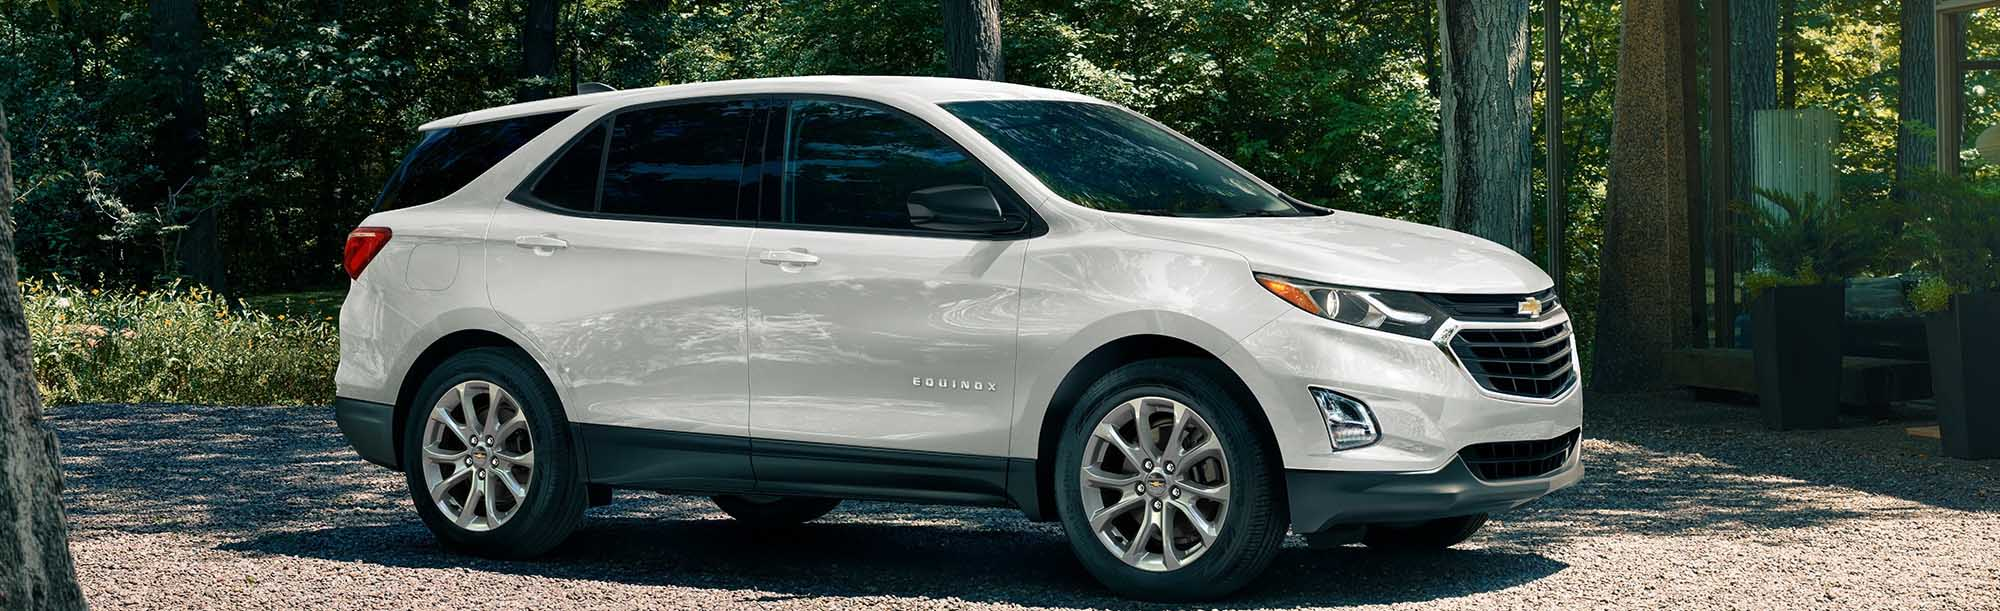 2020 Chevrolet Equinox Now Available In Loganville, Georgia